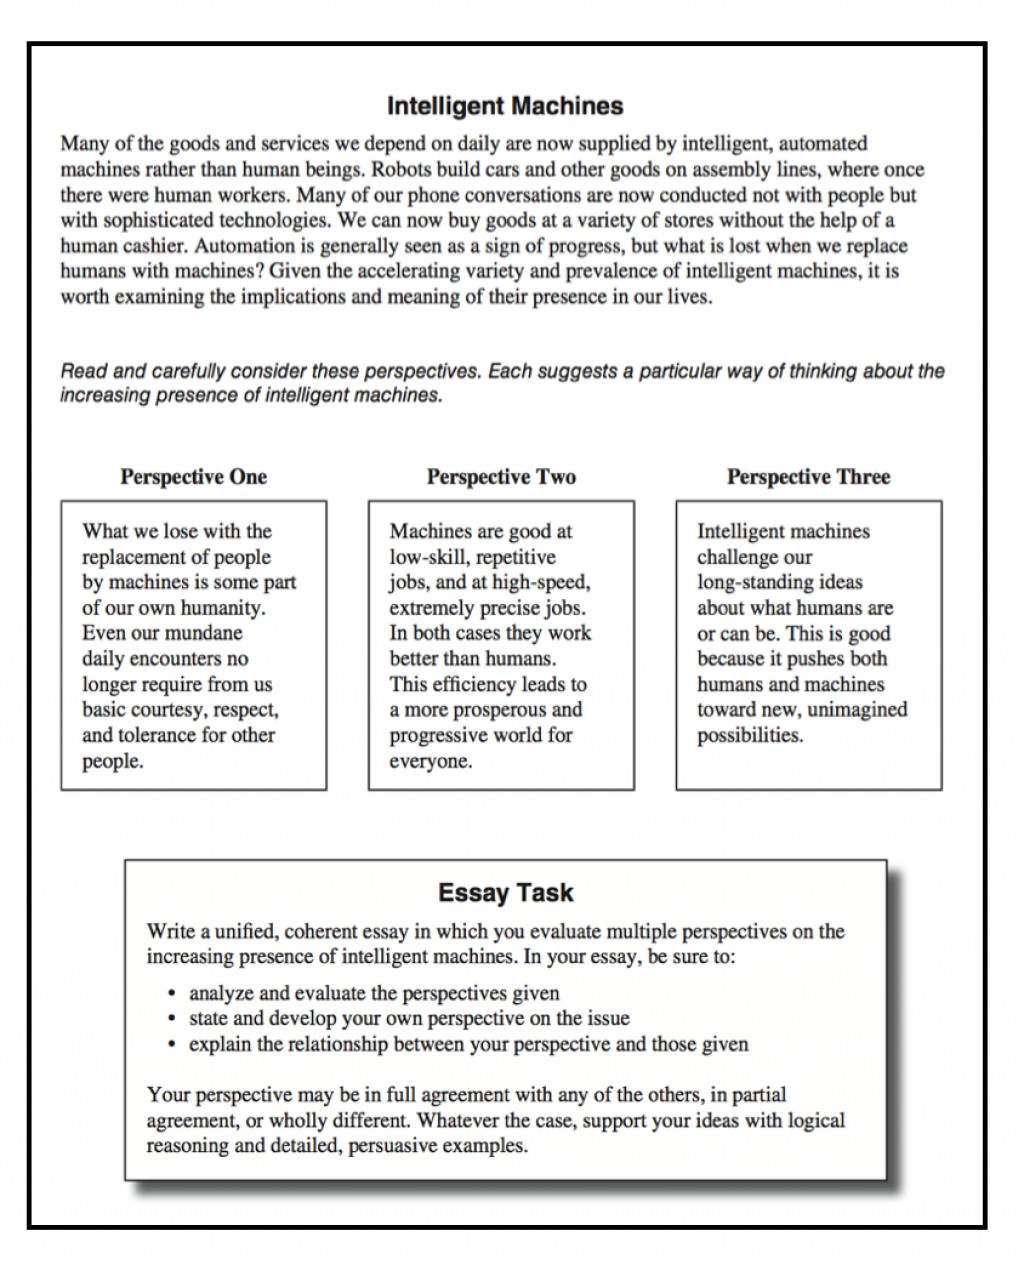 006 Essay Example How To Write An Act Sample Latest Writing Promptsthe World Of Writings The Screen Shot Essays New Topics Dreaded 2018 Template Large